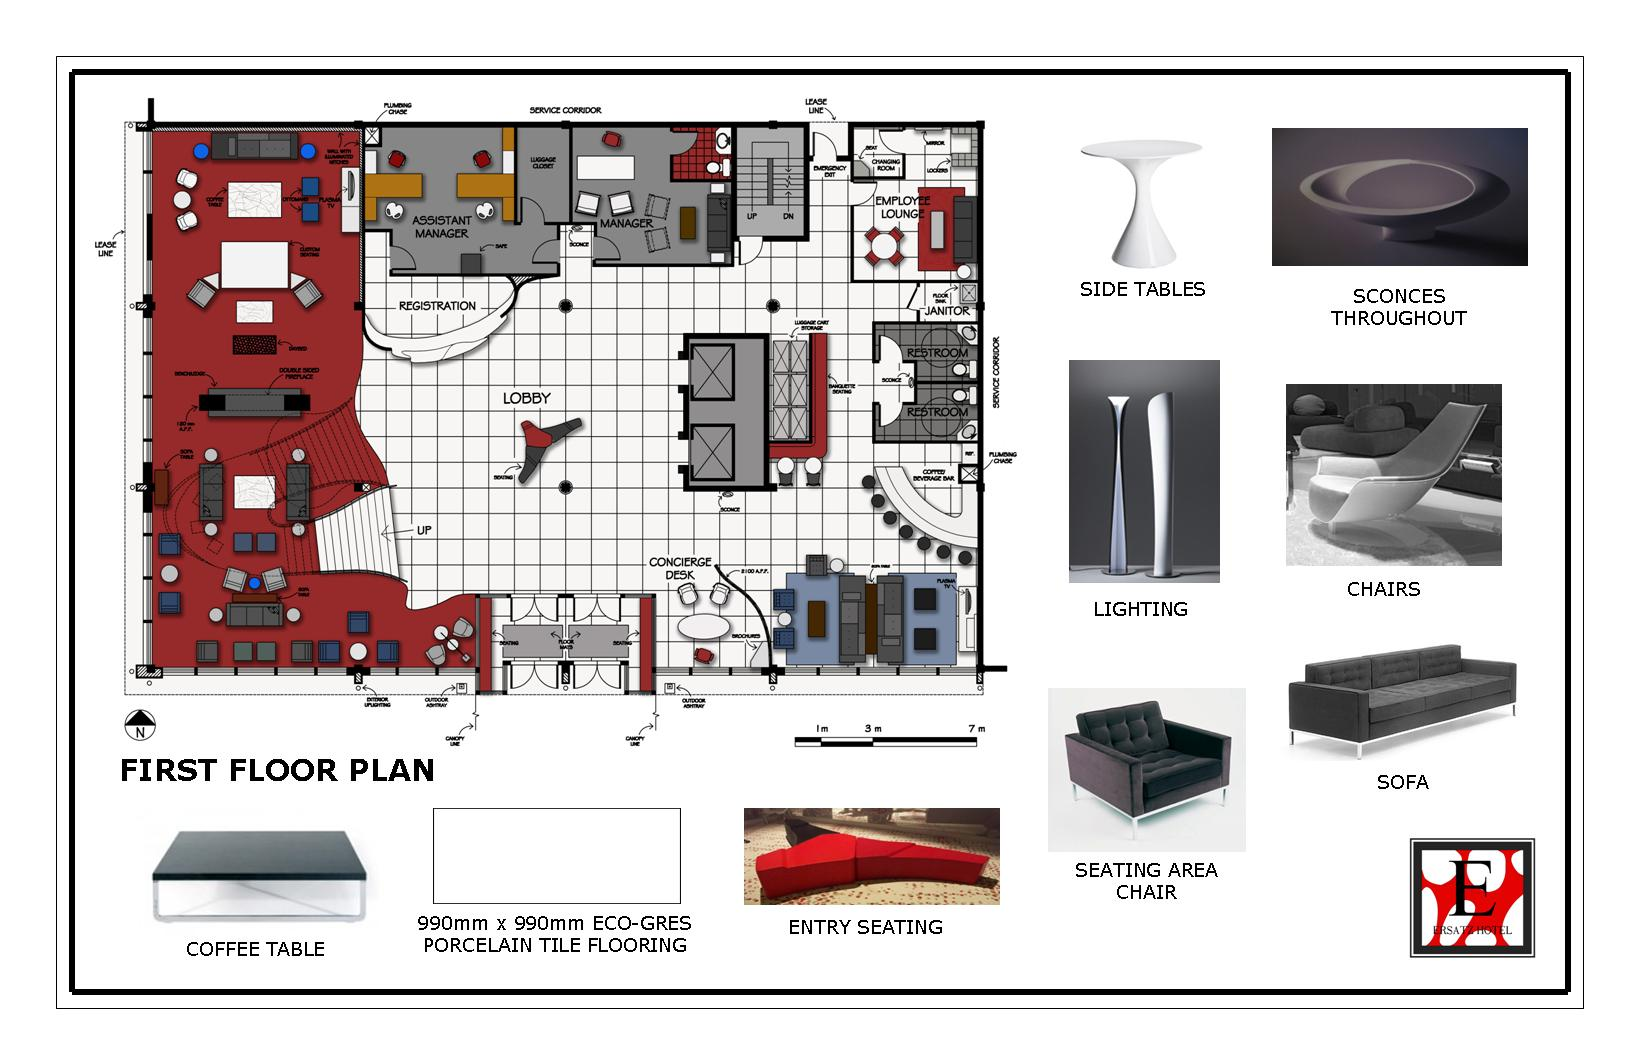 Hotel first floor and materials first floor plan of the san francisco hotel as well as some of the major furniture pieces throughout the space